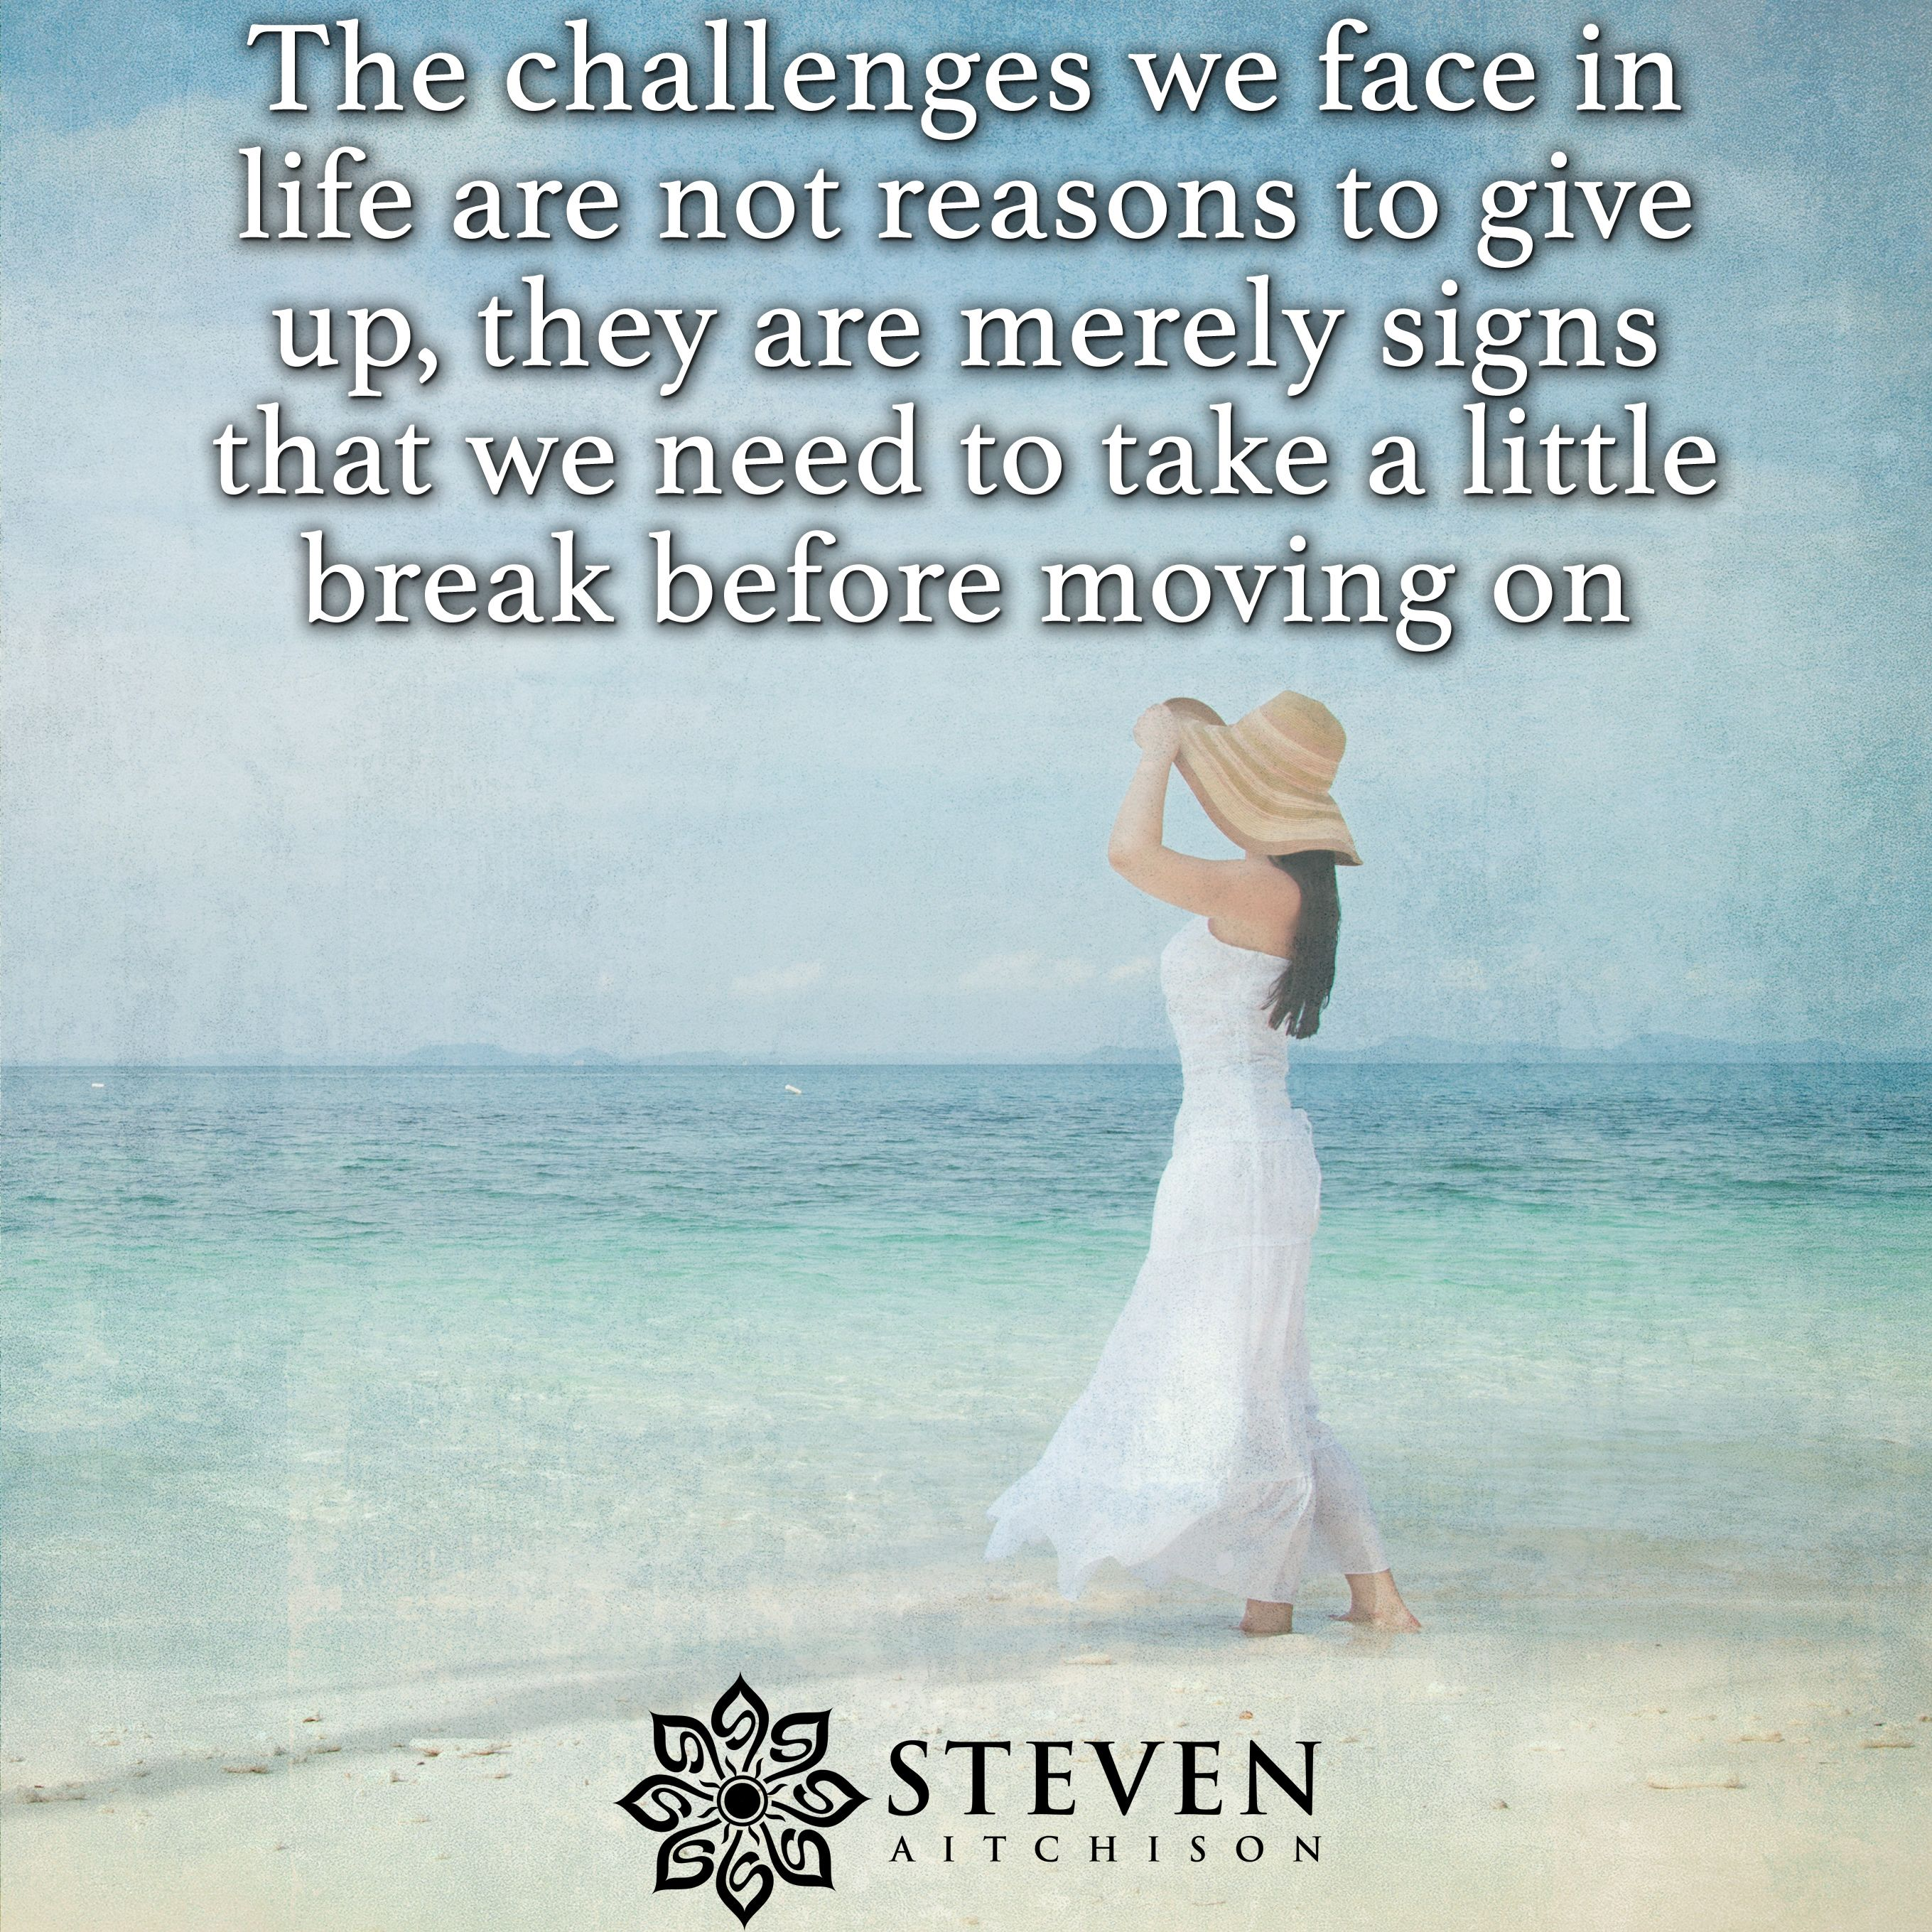 The challenges we face  #motivational more from https://www.facebook.com/ChangeYourThoughtsToday